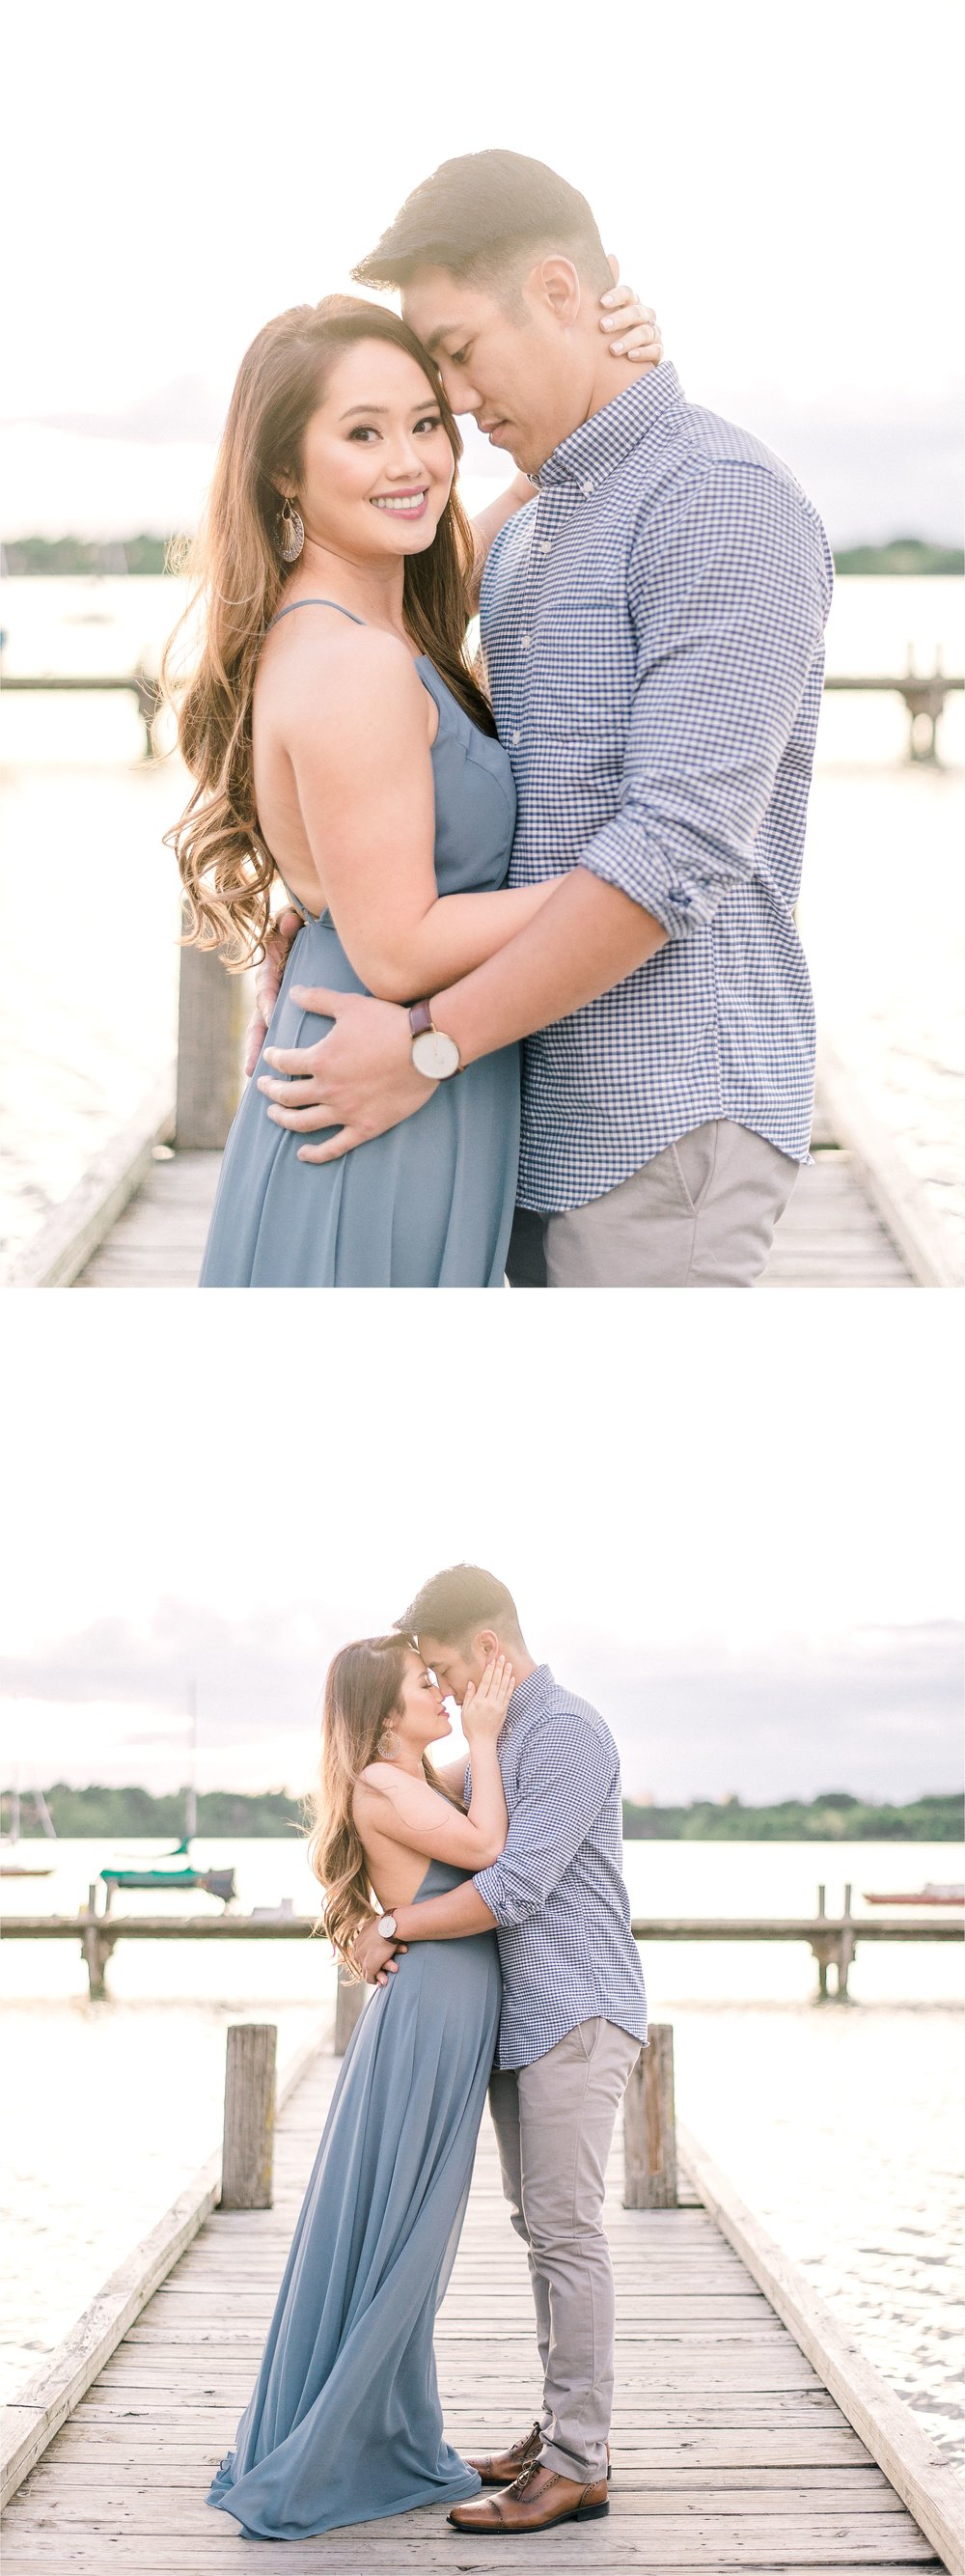 CHUALEEPHOTOGRAPHY_TEXASWEDDINGPHOTOGRAPHER_WHITEROCKLAKE_1025.jpg